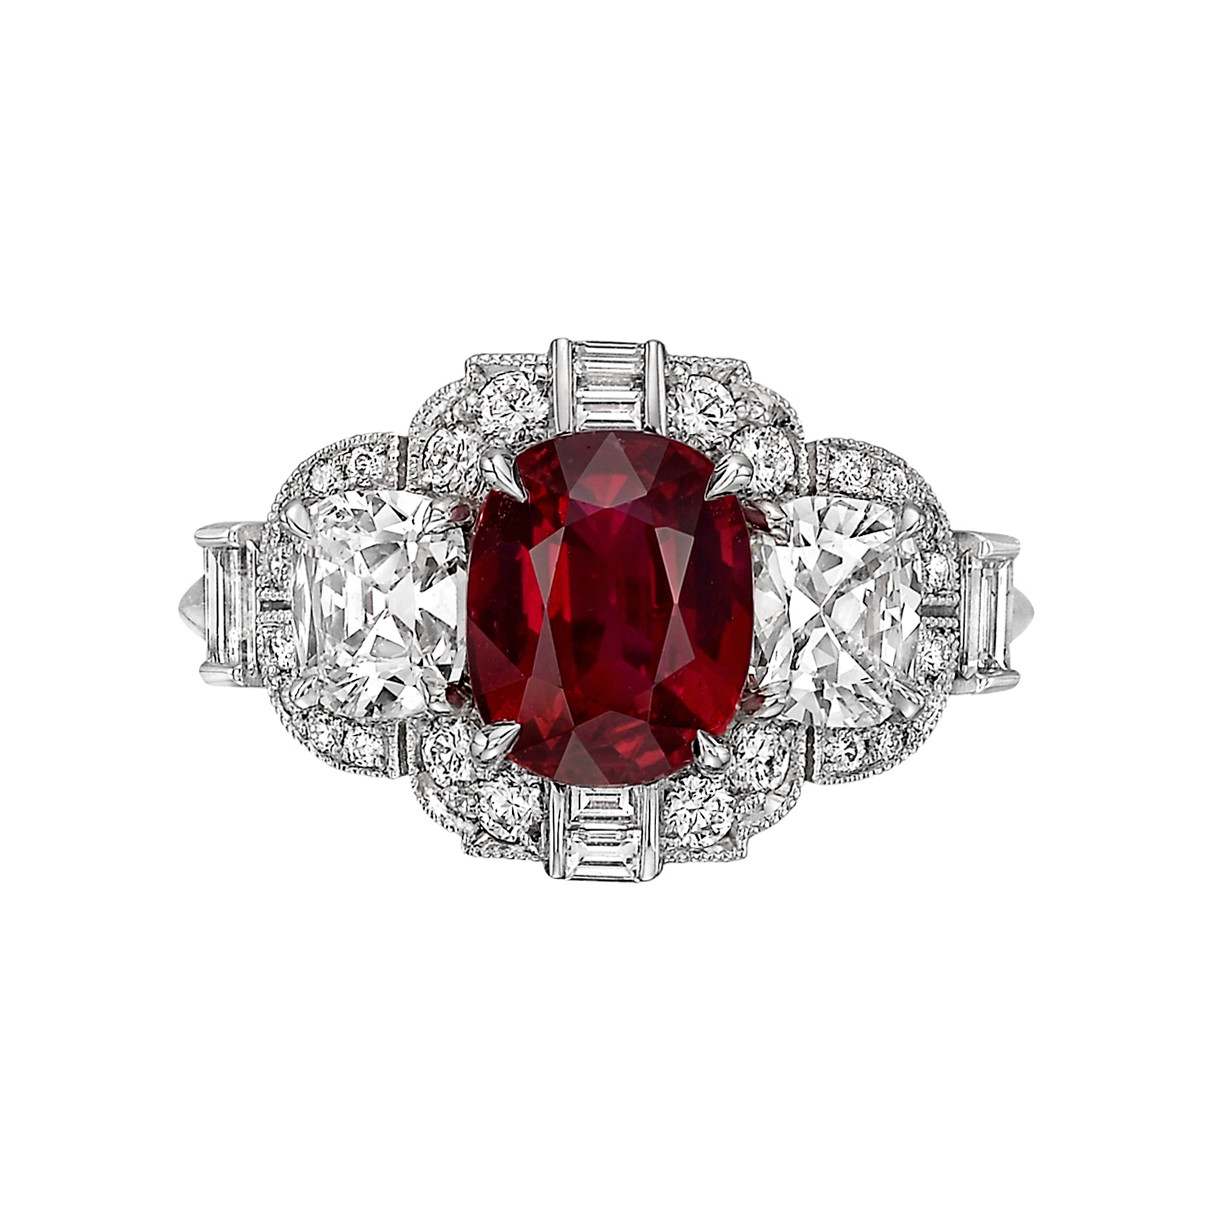 2.02 Carat Ruby & Diamond Ring